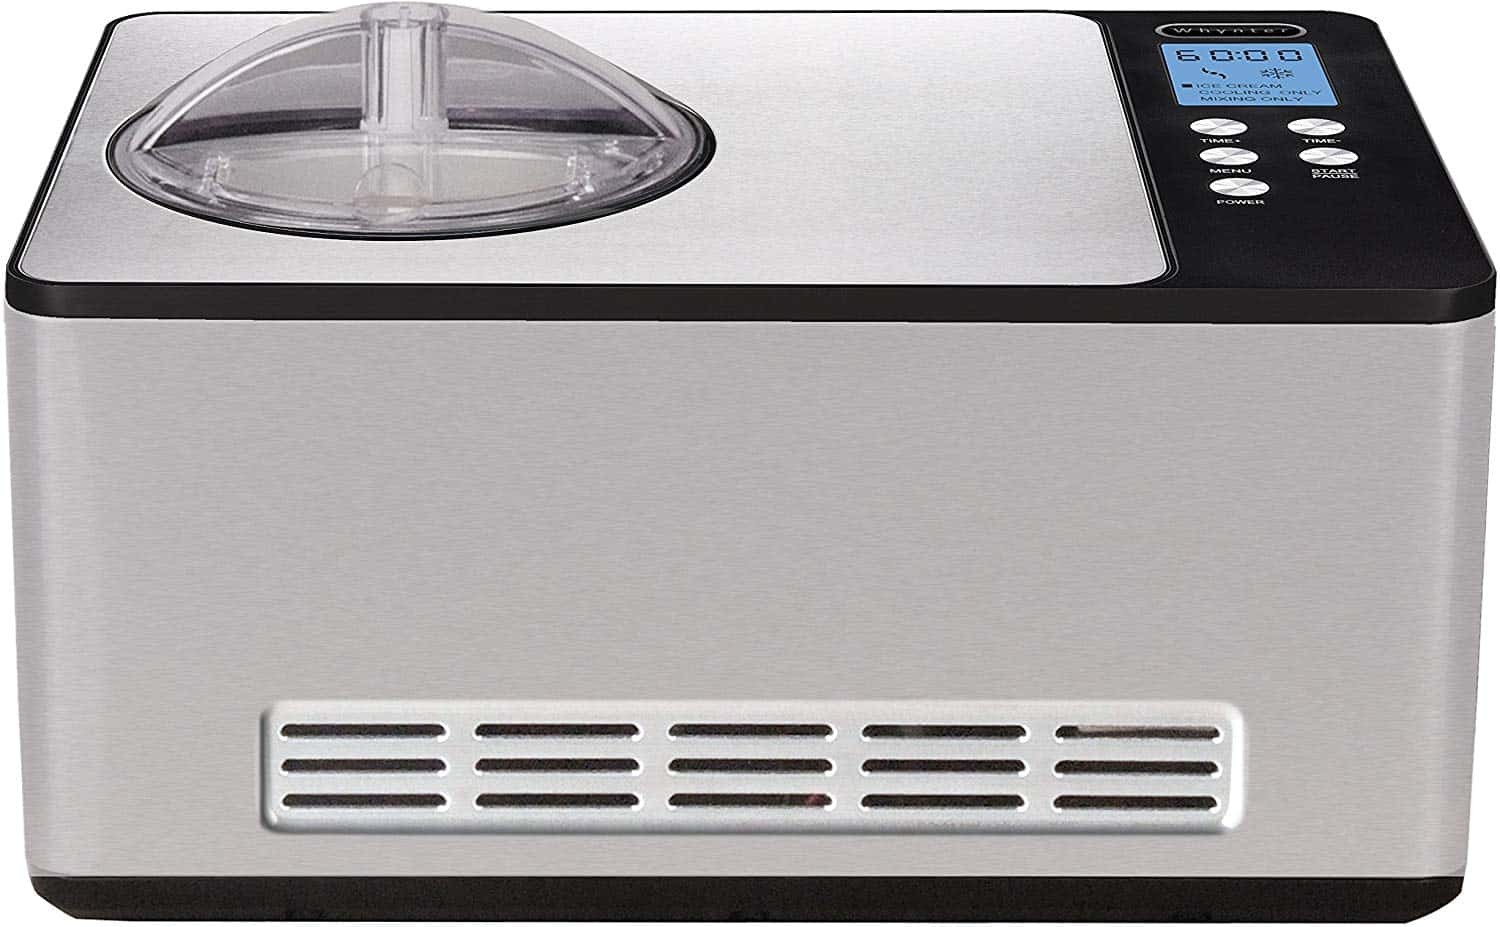 Whynter ICM-200LS Stainless Steel Ice Cream Maker Review